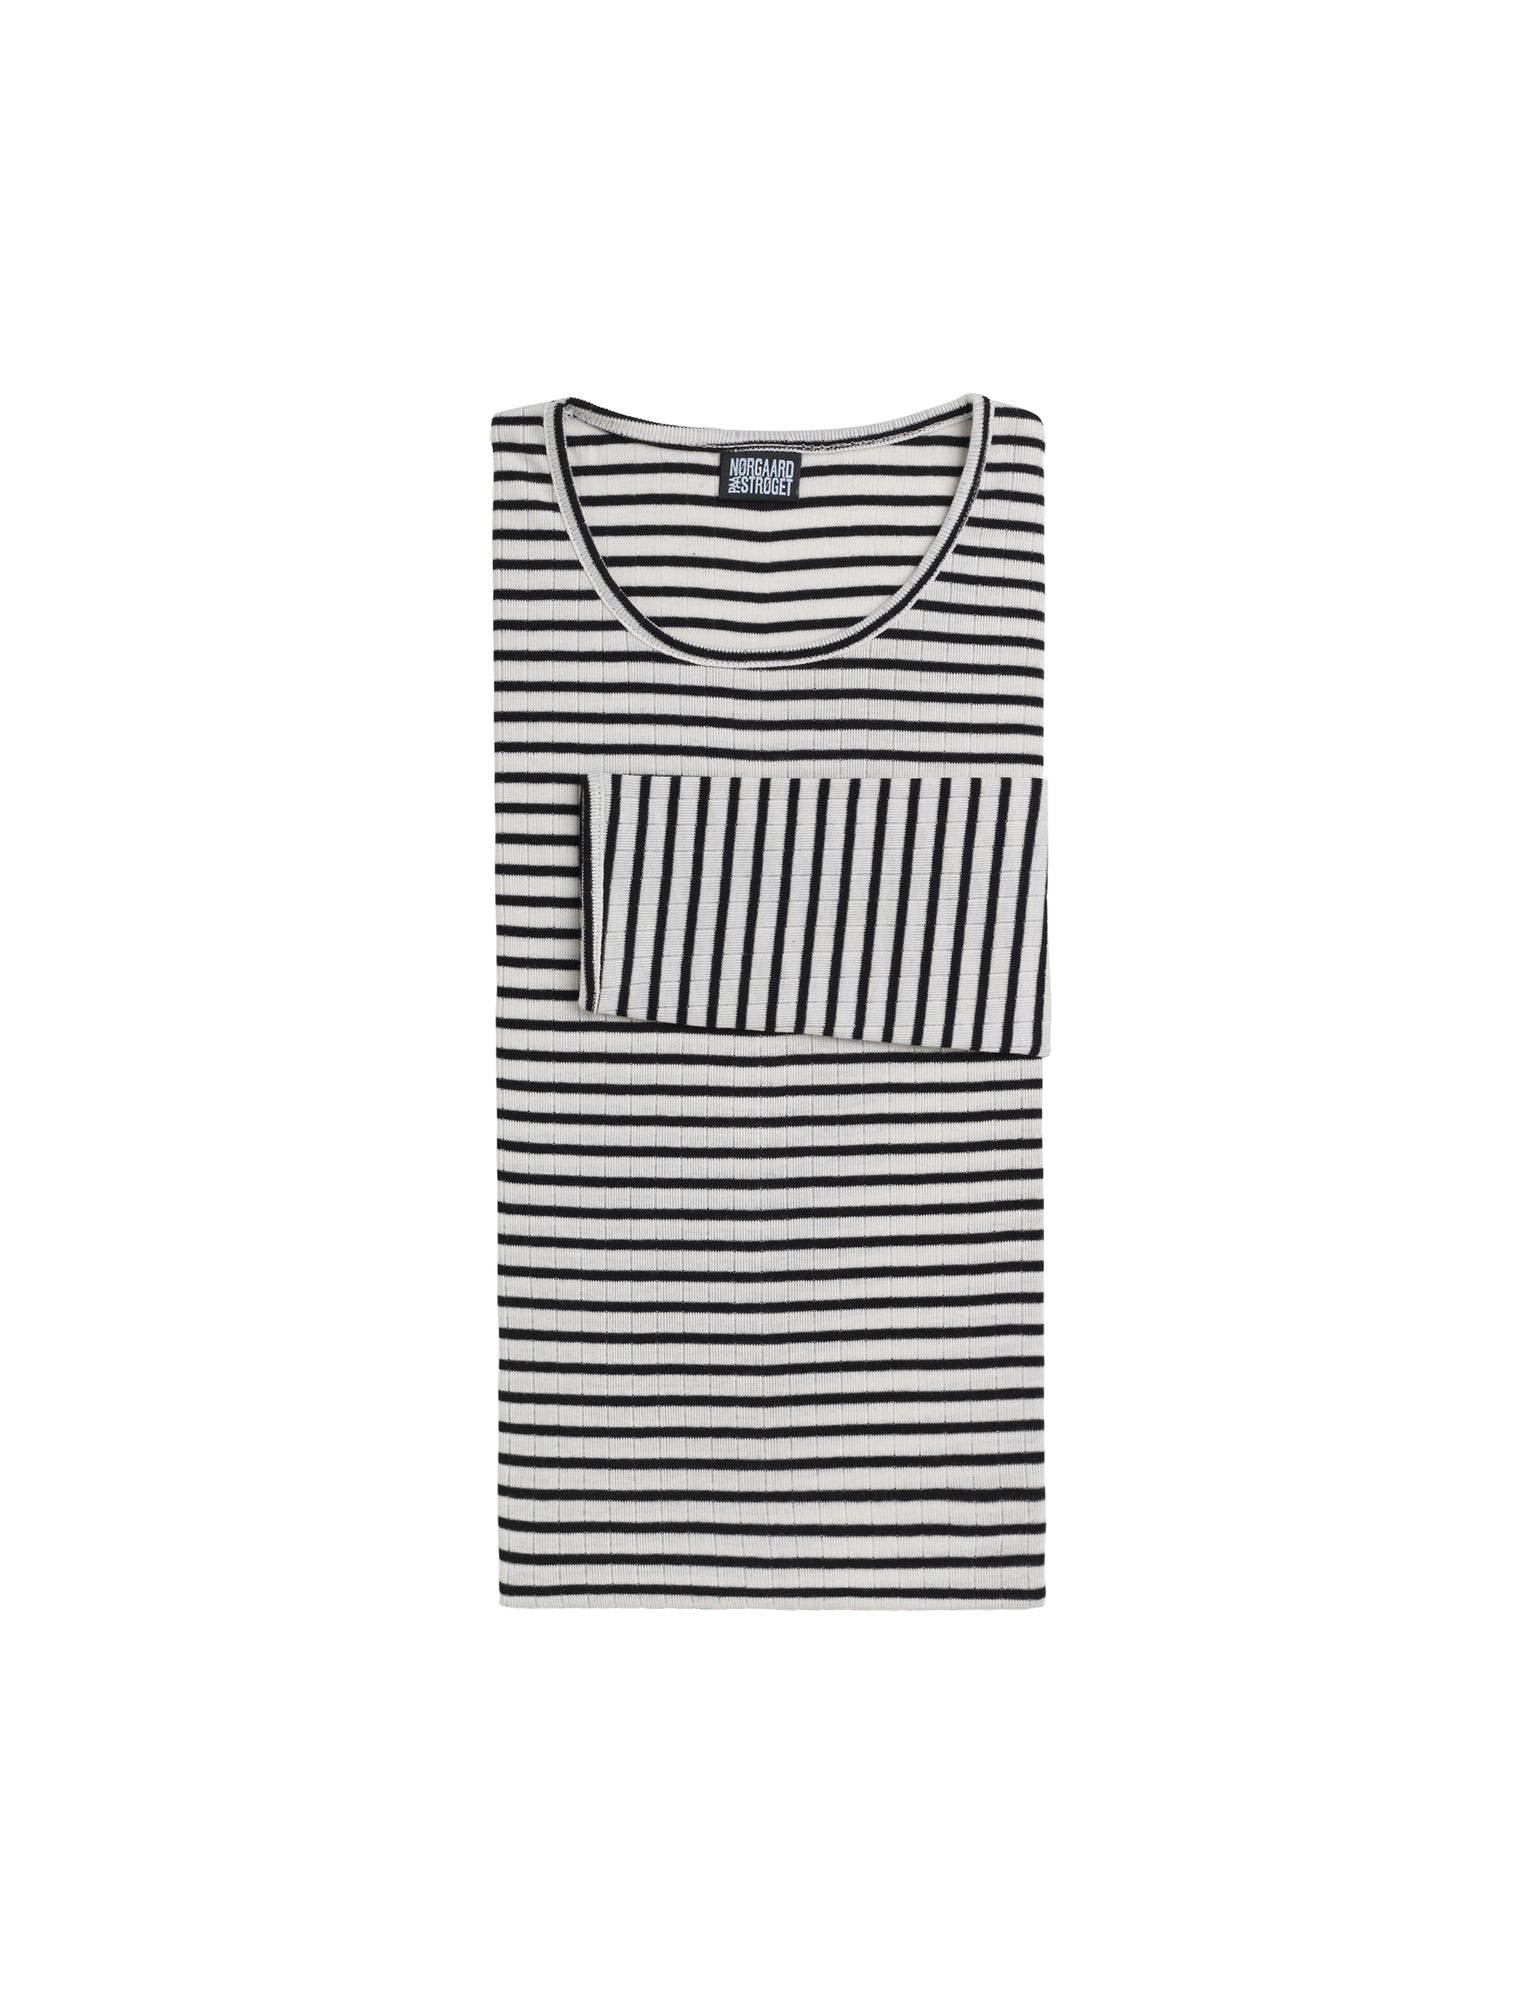 101 NPS Stripes, Ecru/Black